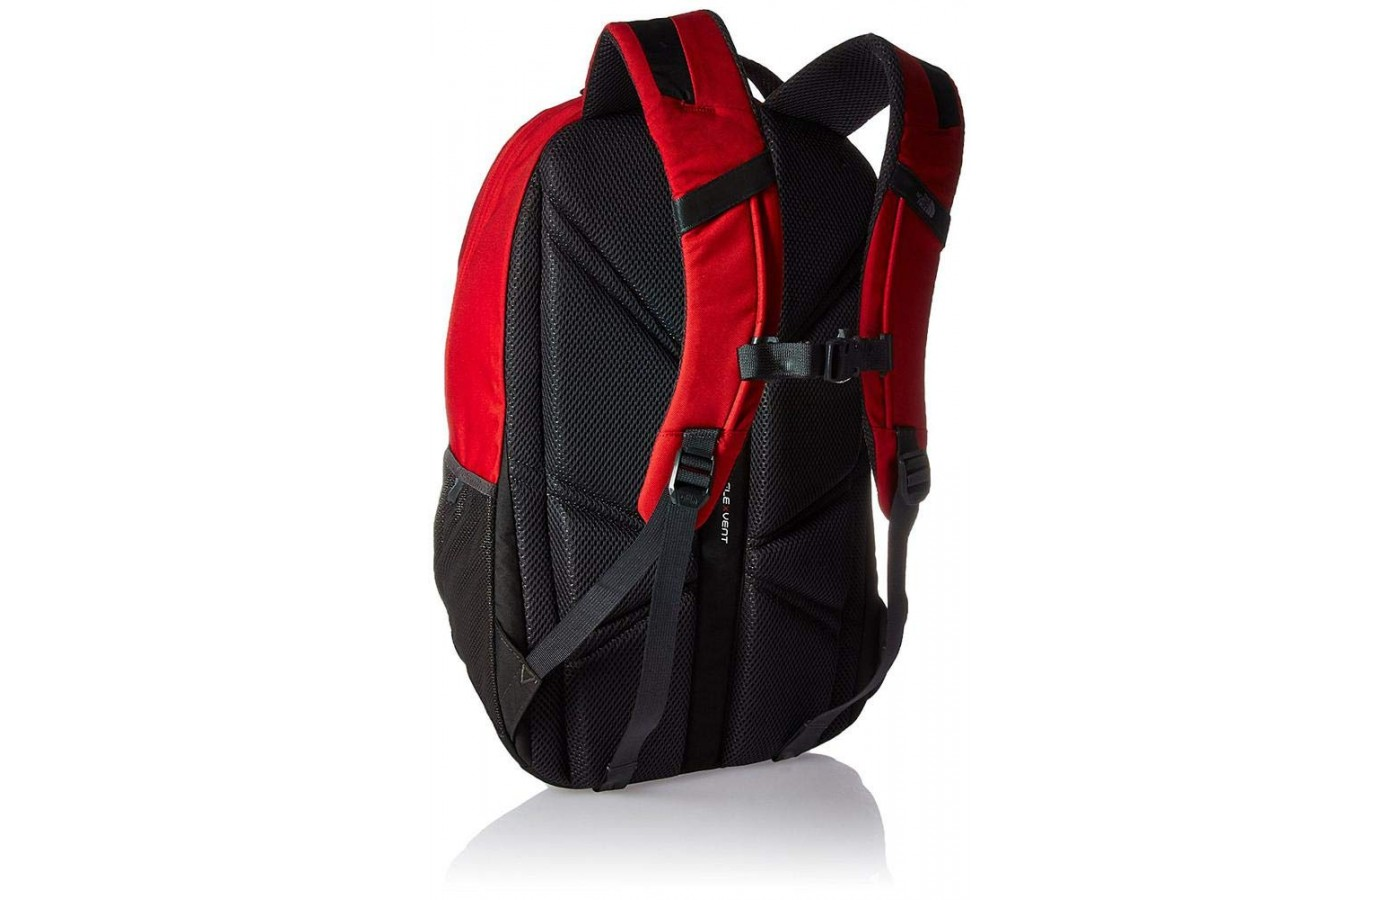 The rigid FlexVent provides more than the basic support of many backpacks